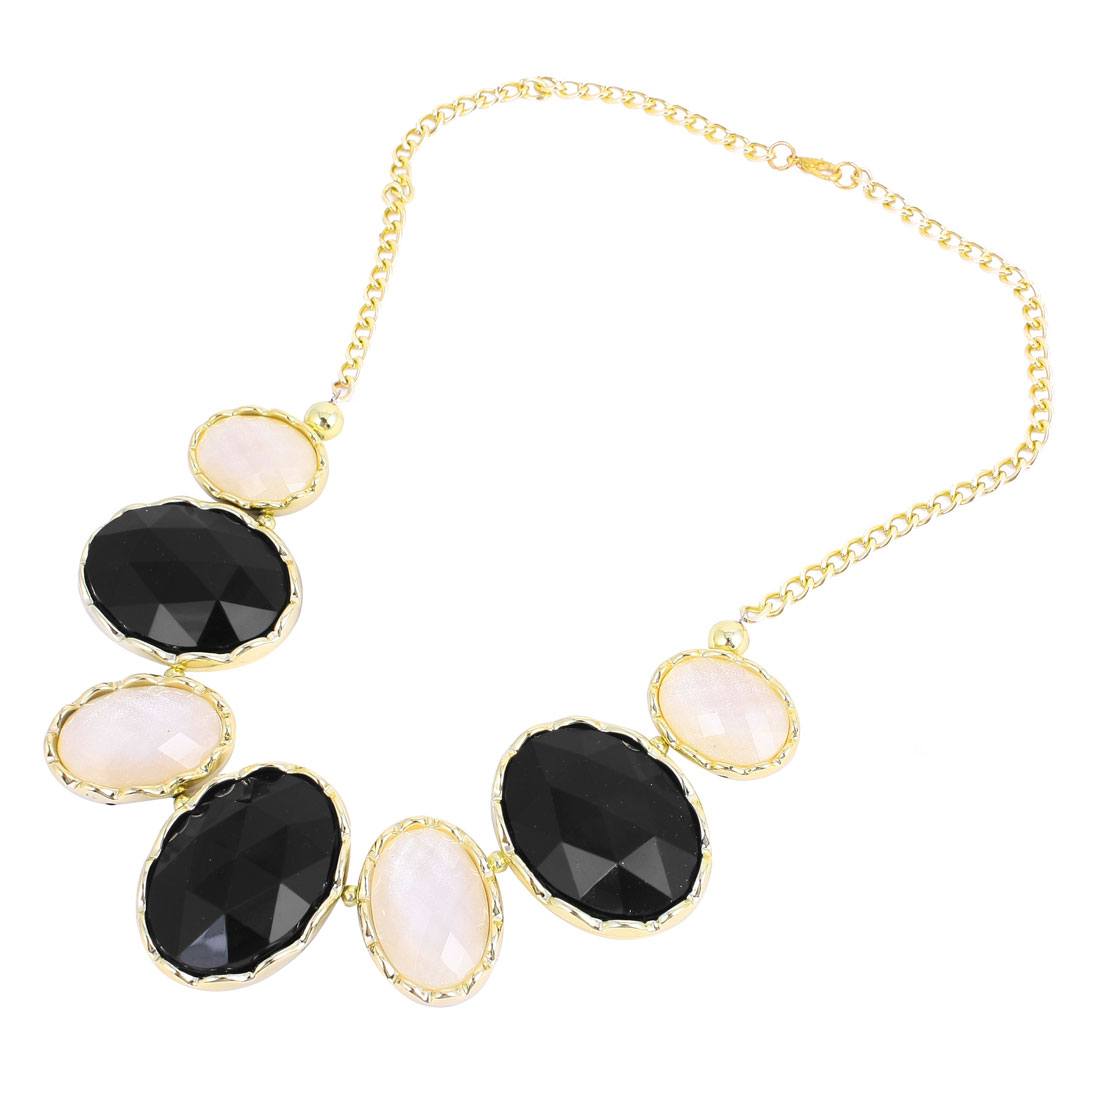 Black White Oval Shaped Faux Crystal Decor Bib Necklace for Ladies Woman